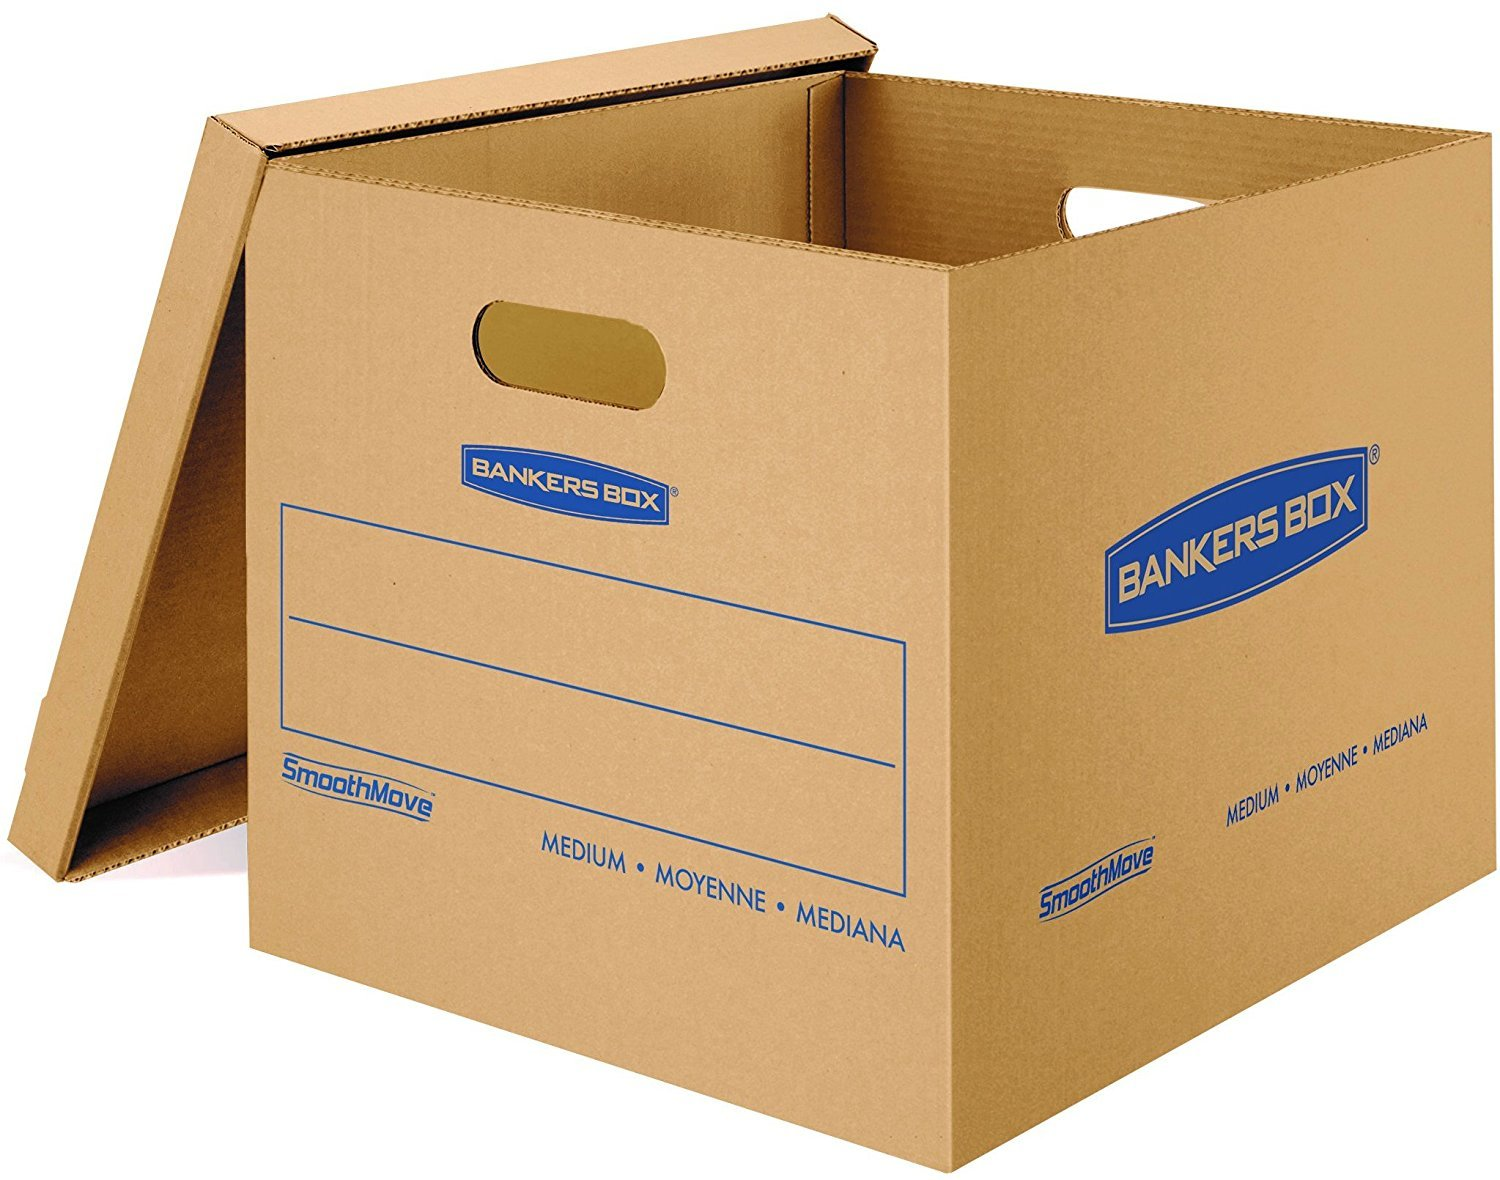 Bankers Box SmoothMove Classic Moving Boxes, Tape-Free Assembly, Easy Carry Handles, Medium, 18 x 15 x 14 inches, (7717204) (4 X Pack of 10)